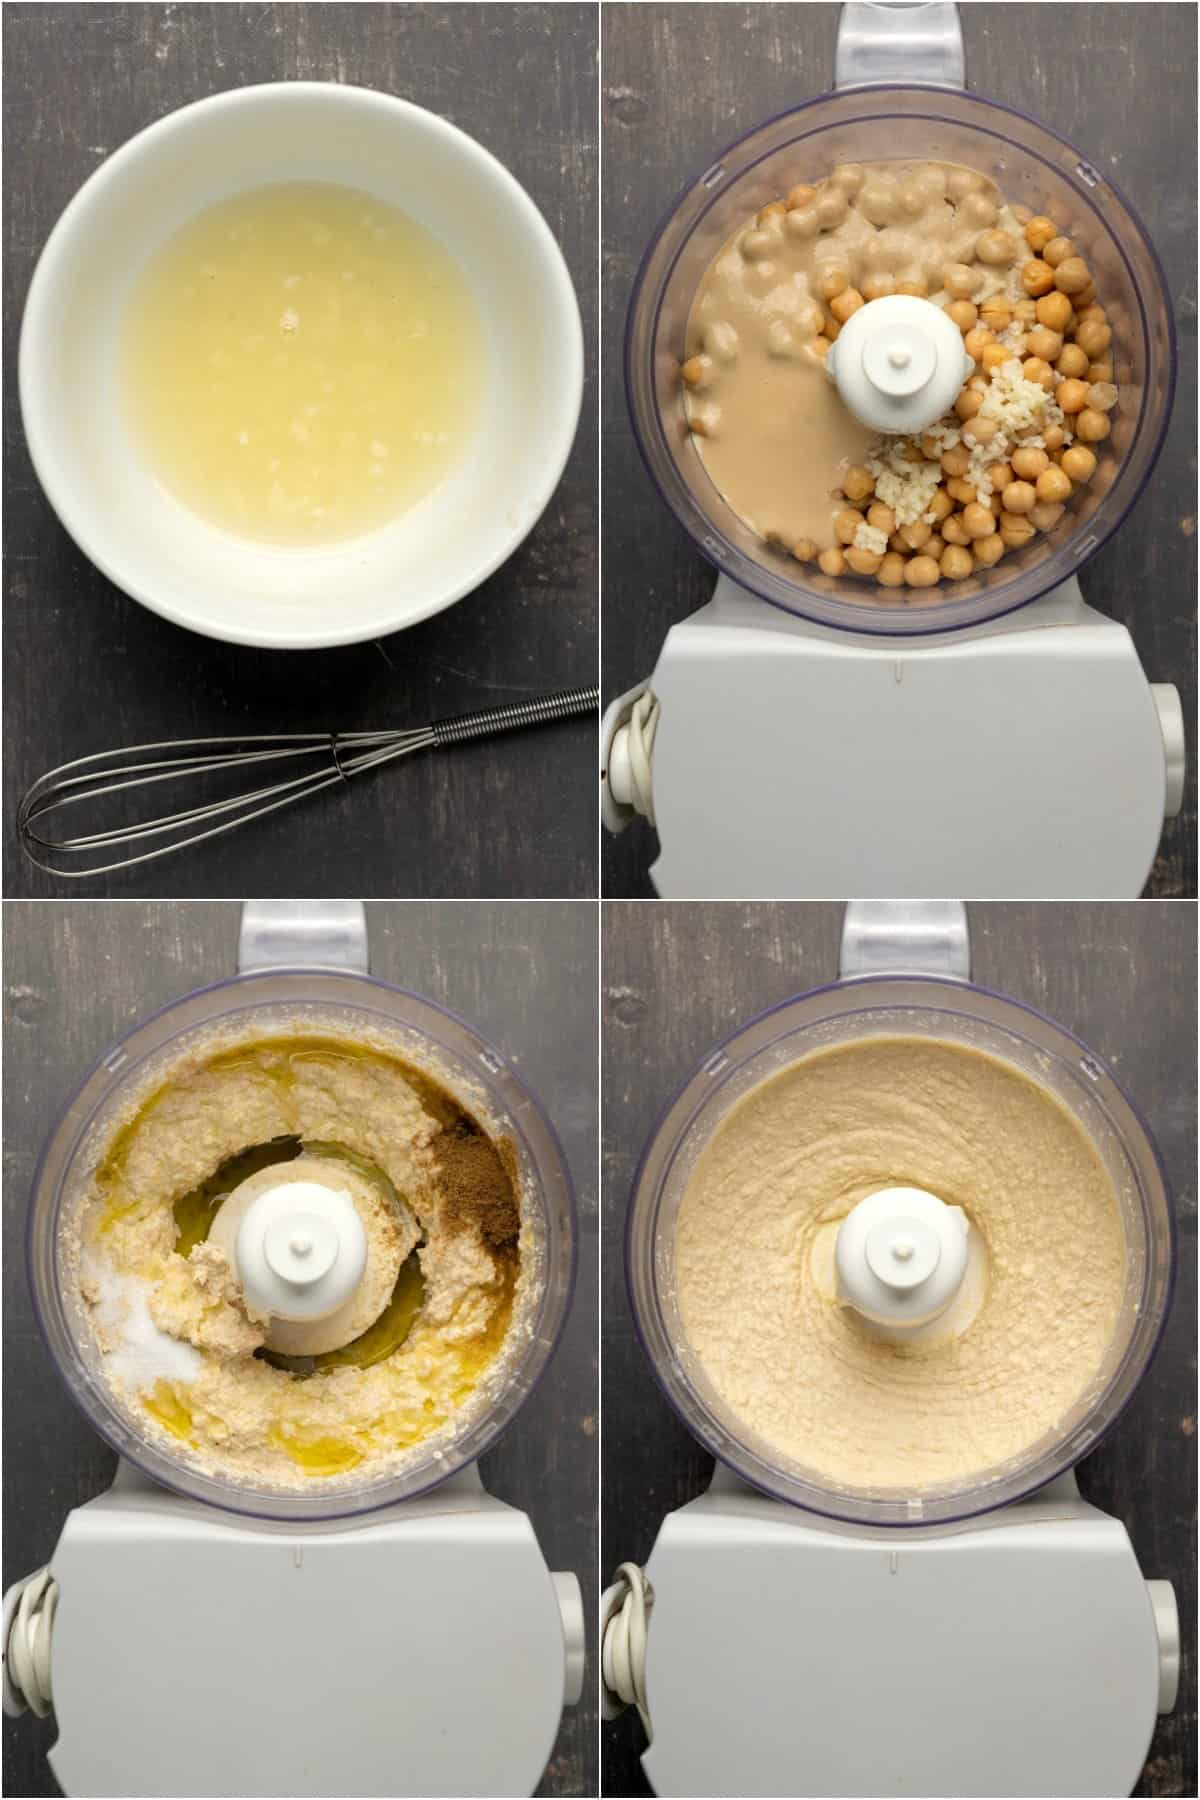 Step by step process photo collage of making hummus.